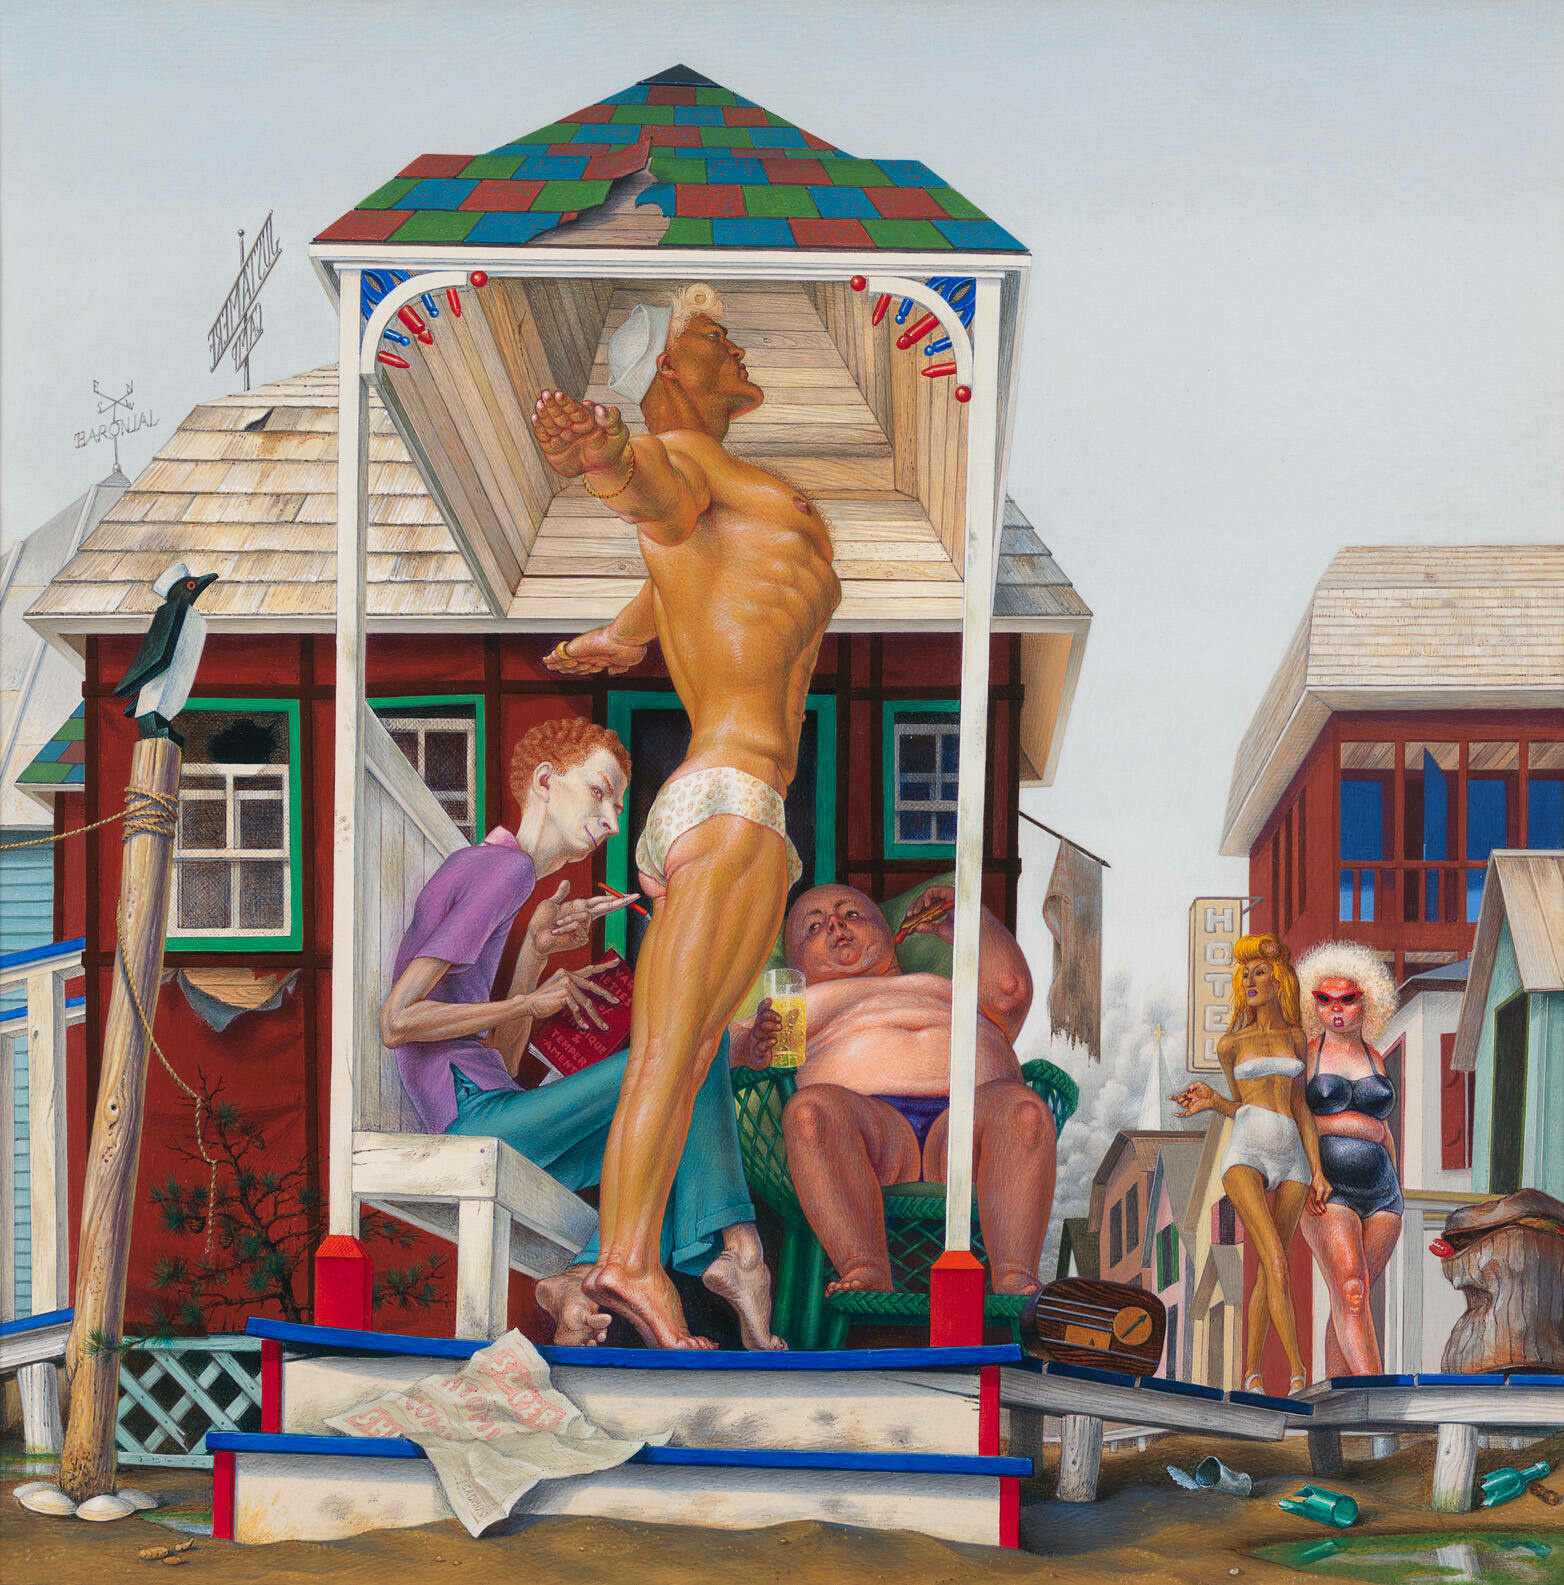 A buff, tan white man in a speedo and sailor hat poses on a front porch as if preparing to dive. Other white figures lounge around and stroll on the adjacent boardwalk.